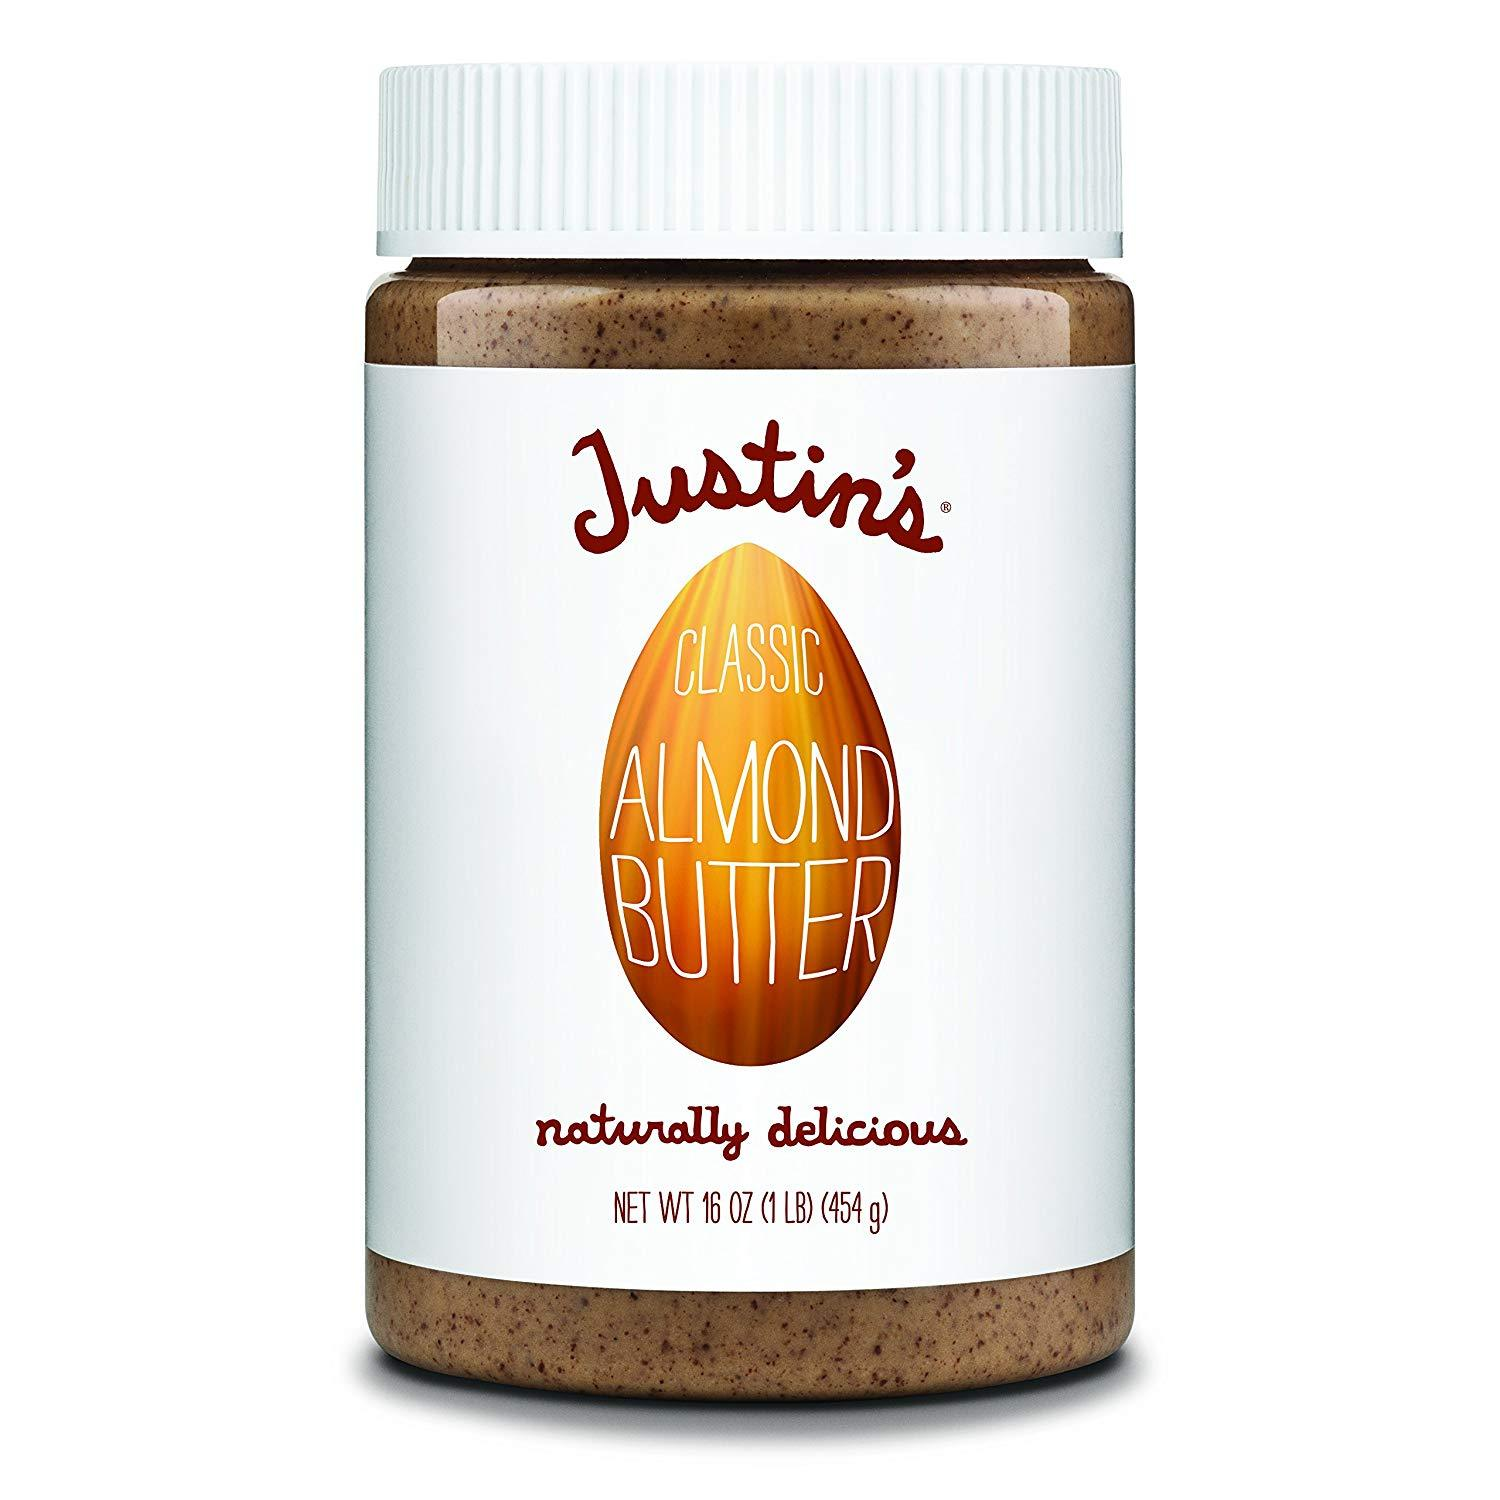 Food & Drink - Justin's - Classic Almond Butter, 454g